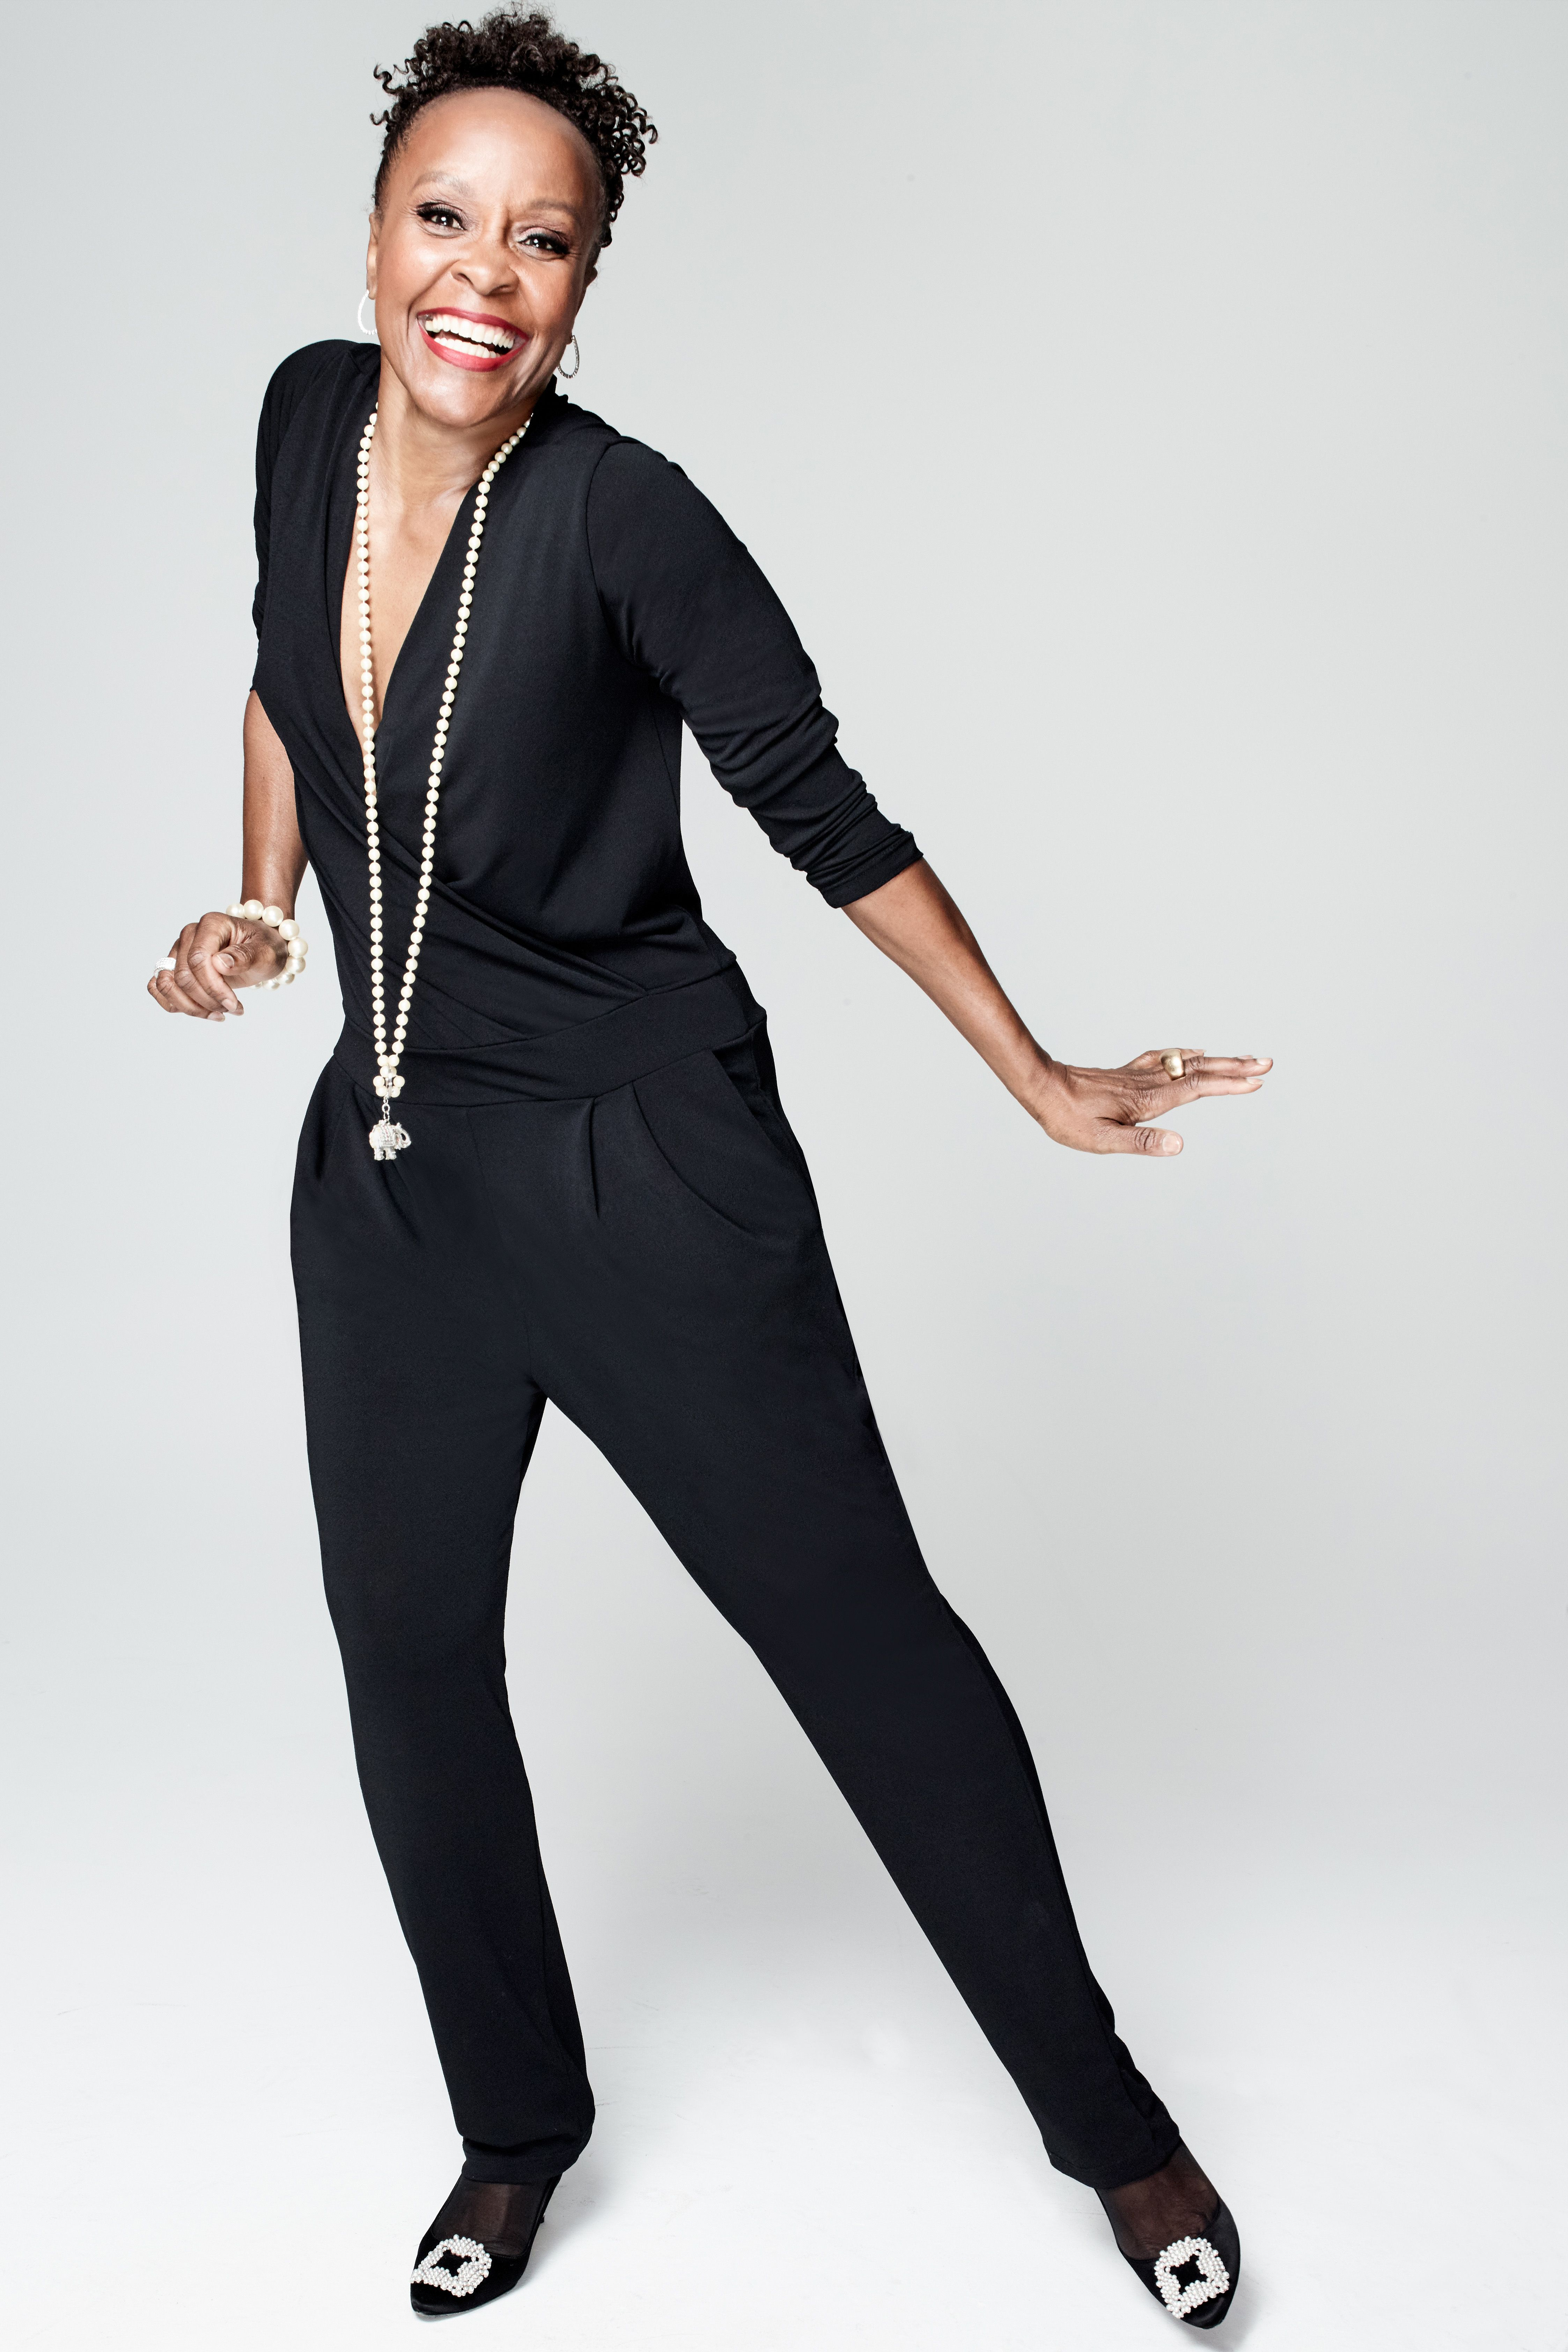 "<p> <strong data-redactor-tag=""strong"">Renee Robinson, 50s, <a href=""https://www.alvinailey.org/"" target=""_blank"" data-tracking-id=""recirc-text-link"">Alvin Ailey American Dance Theater Dancer</a> turned Teaching Artist at Yale University </strong><span class=""redactor-invisible-space"" data-verified=""redactor"" data-redactor-tag=""span"" data-redactor-class=""redactor-invisible-space""></span><br></p><p>""I am in a state of gratitude, surprise, and joy in my 50s. I've discovered that what I've learned as a professional dancer and principal with Alvin Ailey American Dance Theater can be shaped into wisdom, encouragement, and inspiration for not just young dancers, but also anyone who studies dance and the art of storytelling. I'm still living my dance life, this time off the stage too."" <span data-redactor-tag=""span"" data-verified=""redactor""></span></p>"